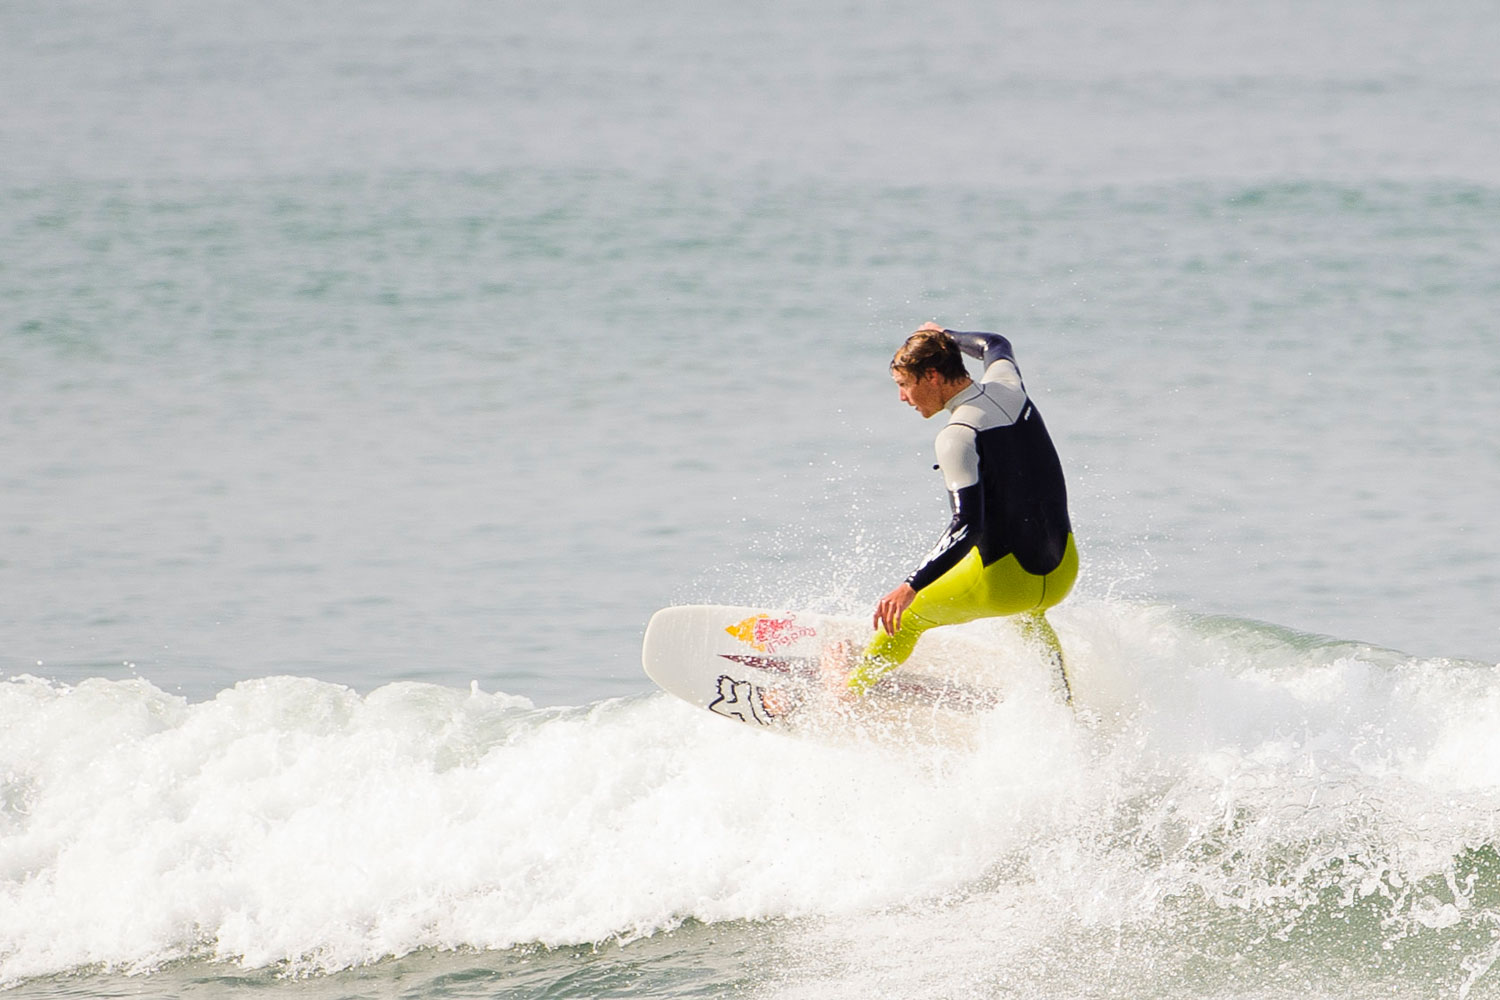 Ian Walsh crashes through a wave at the Red Bull Switchboard event held on March 29th.